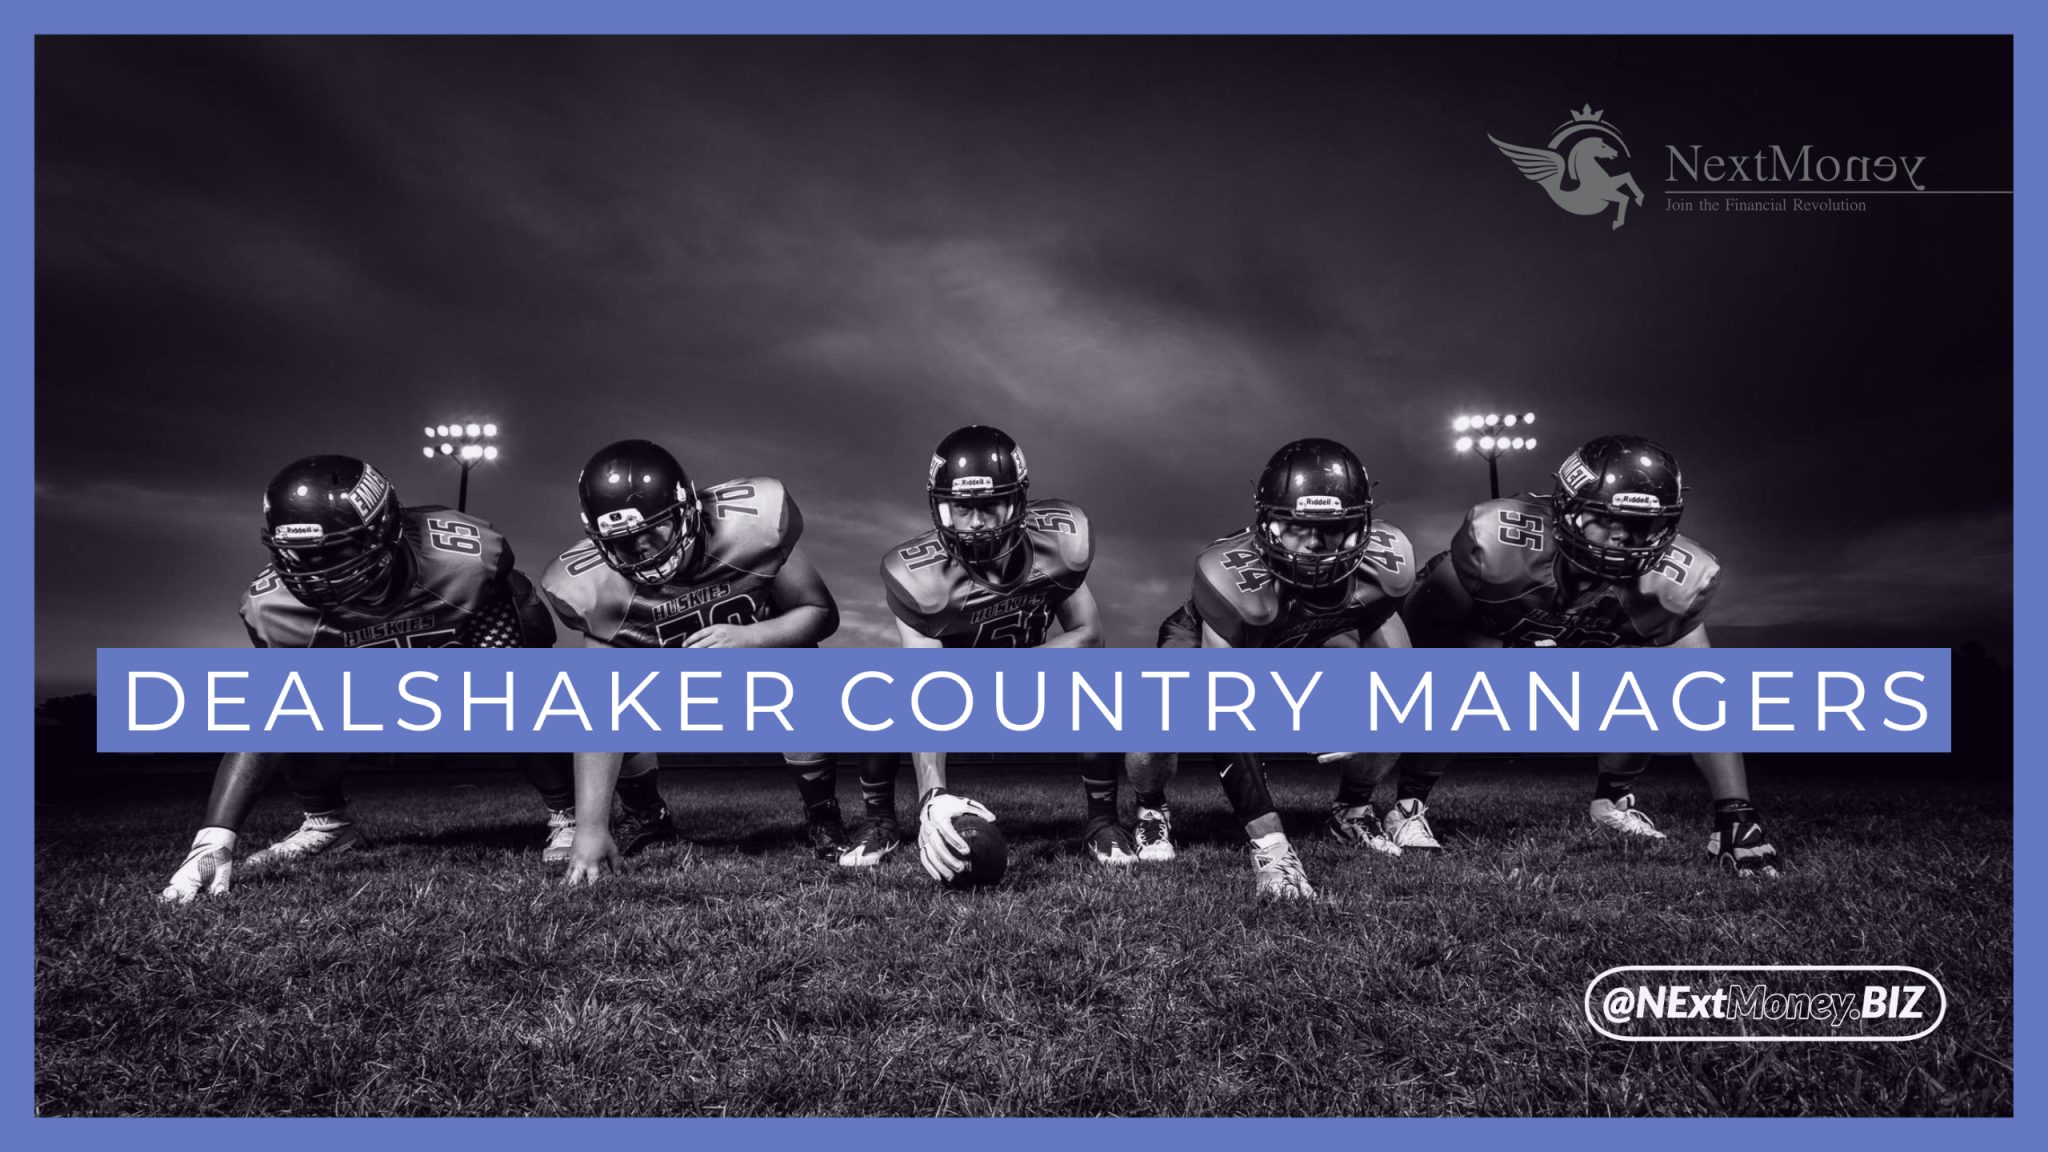 Dealshaker Country Managers